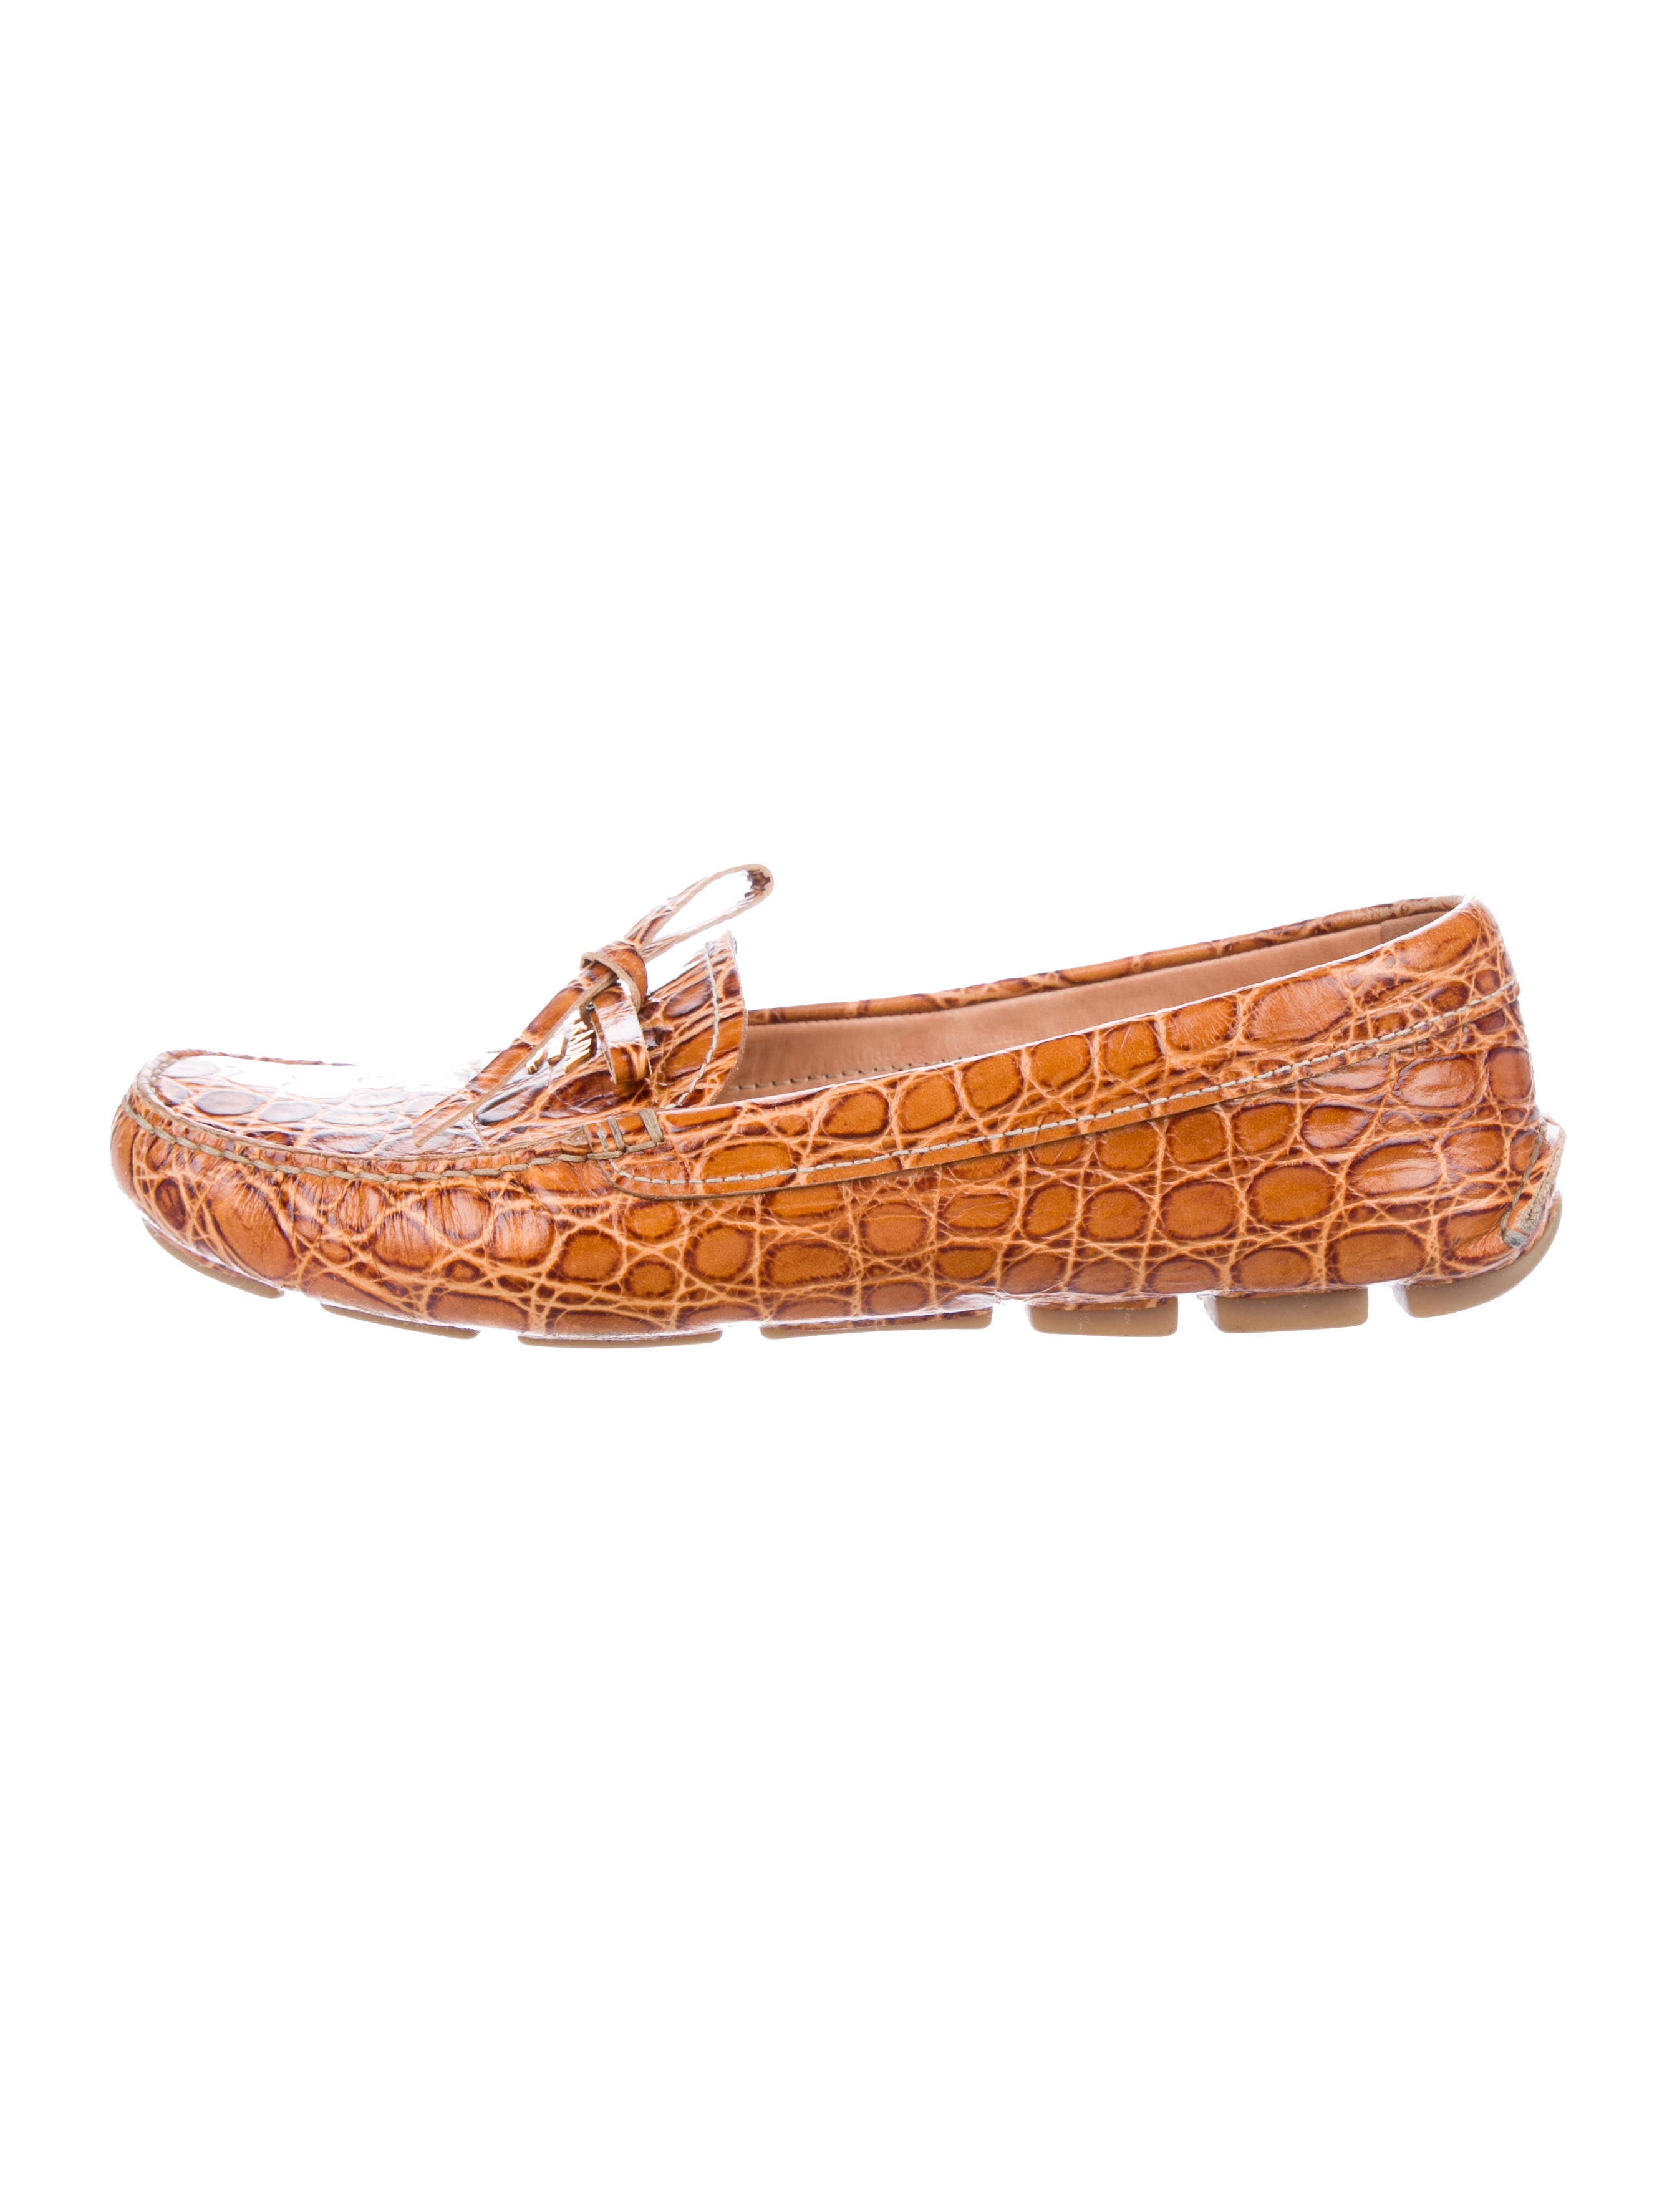 Prada Alligator Square-Toe Loafers 2014 unisex for sale free shipping classic cheap sale sast view for sale KPgLn